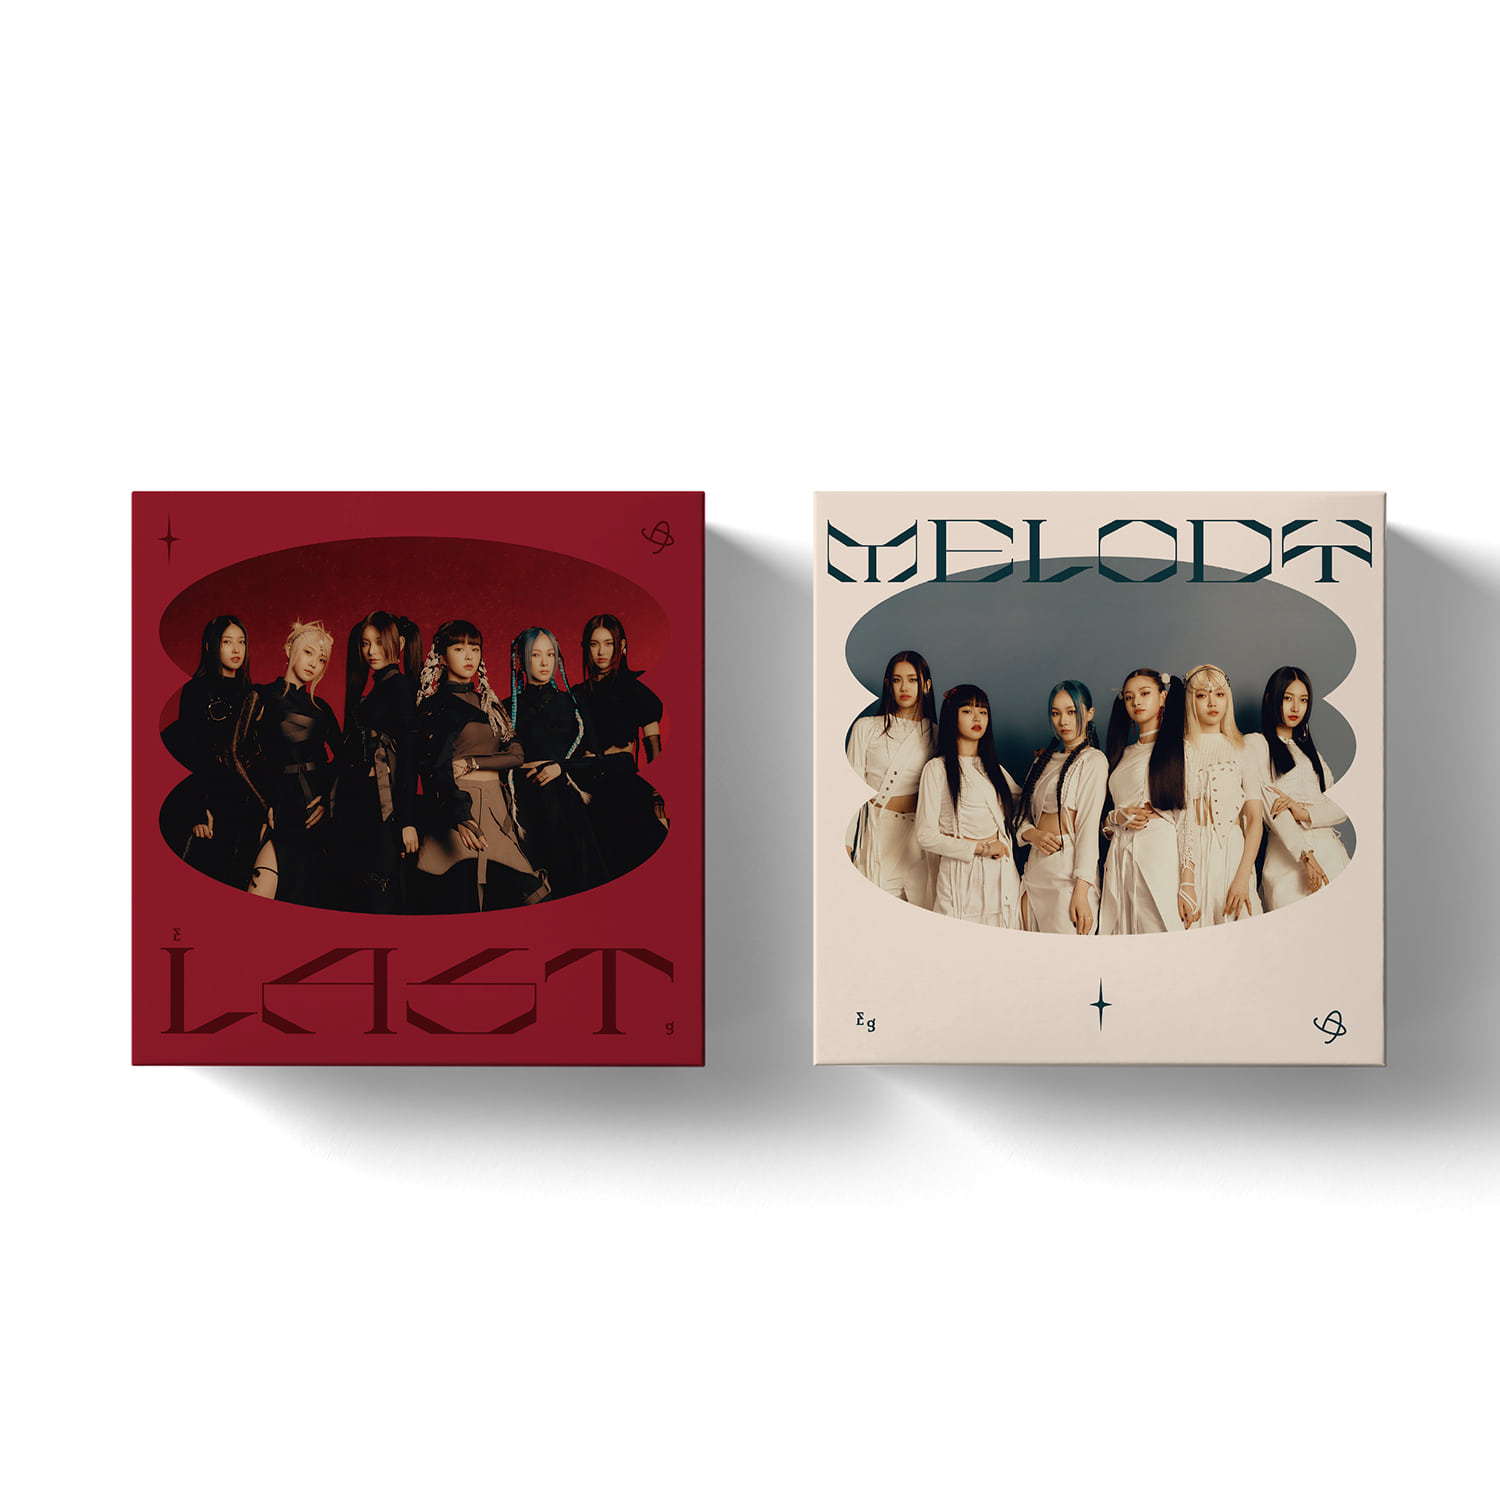 에버글로우(EVERGLOW) - 3rd Single Album [LAST MELODY] (First Memoir ver. + Last Melody ver. = 2CD SET)케이팝스토어(kpop store)